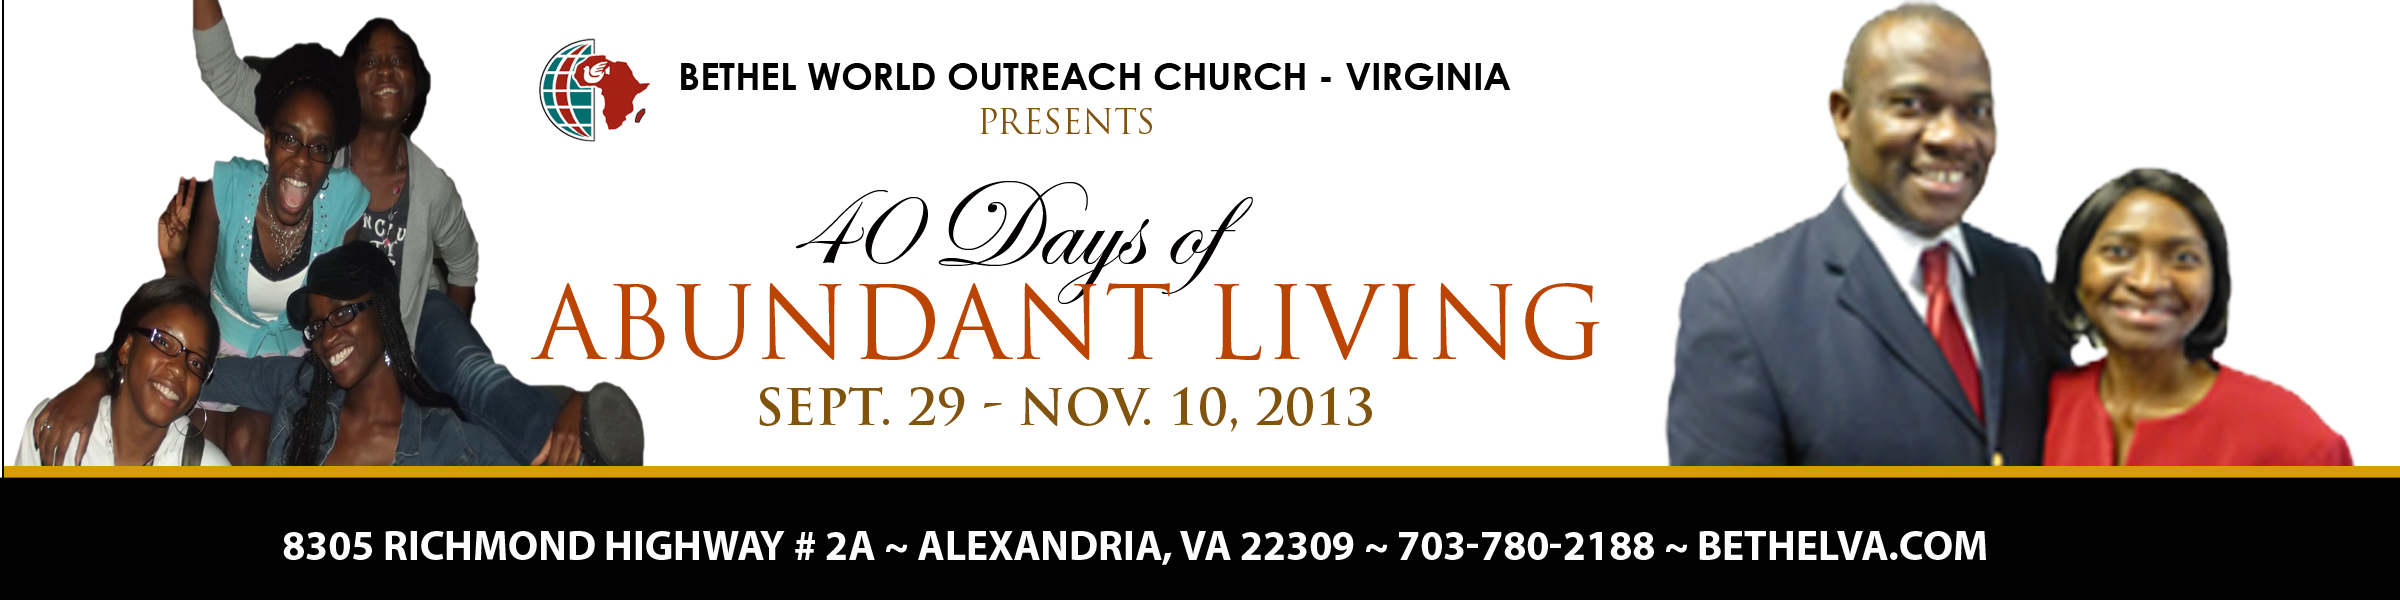 40 Days of Abundant Living Header copy